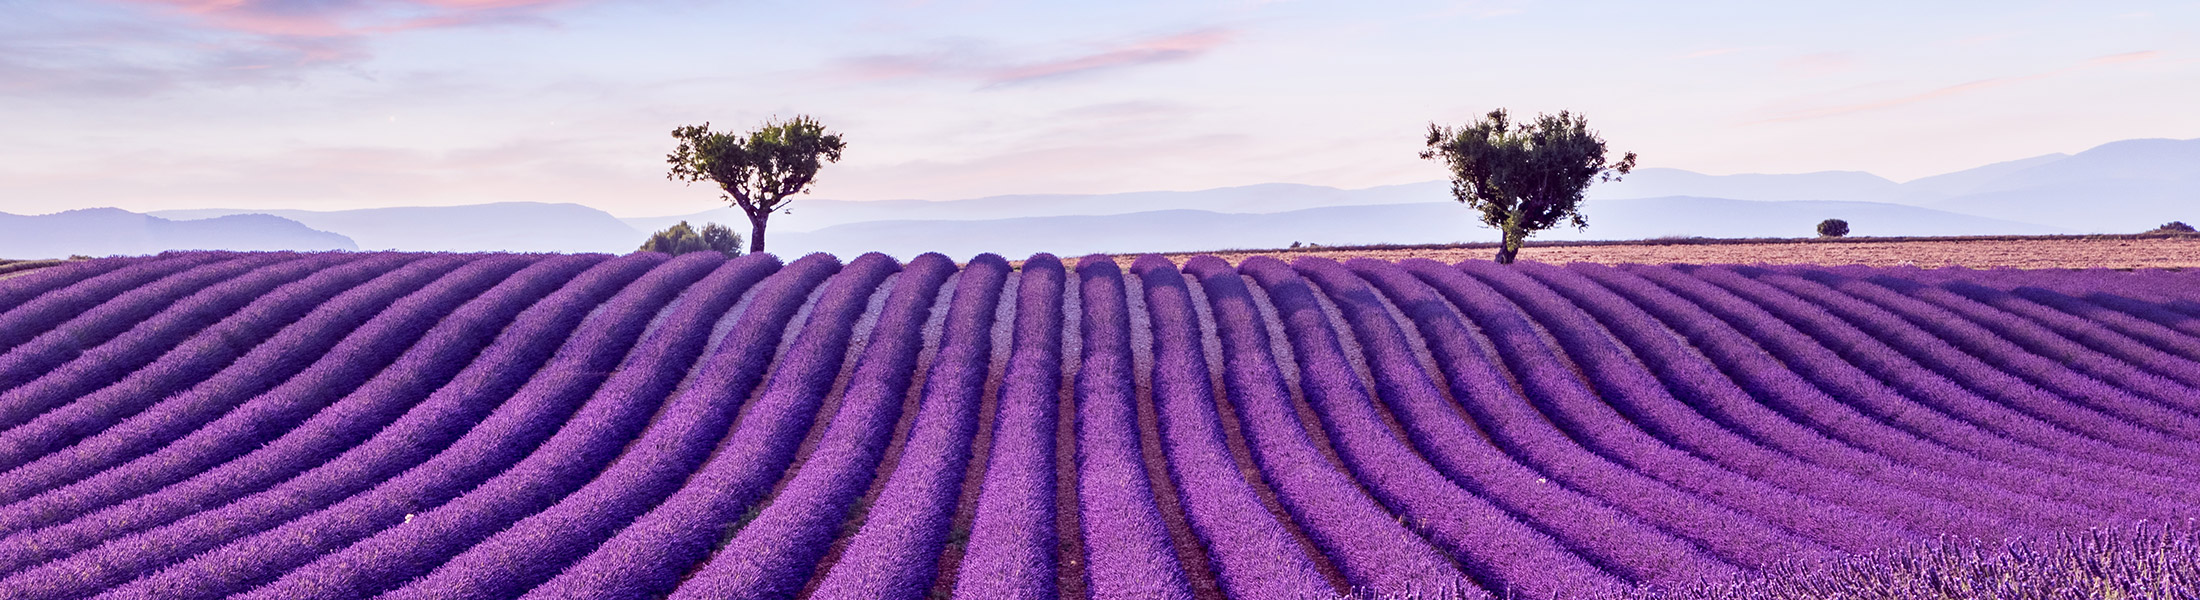 Lavender fields in the south of France in Europe